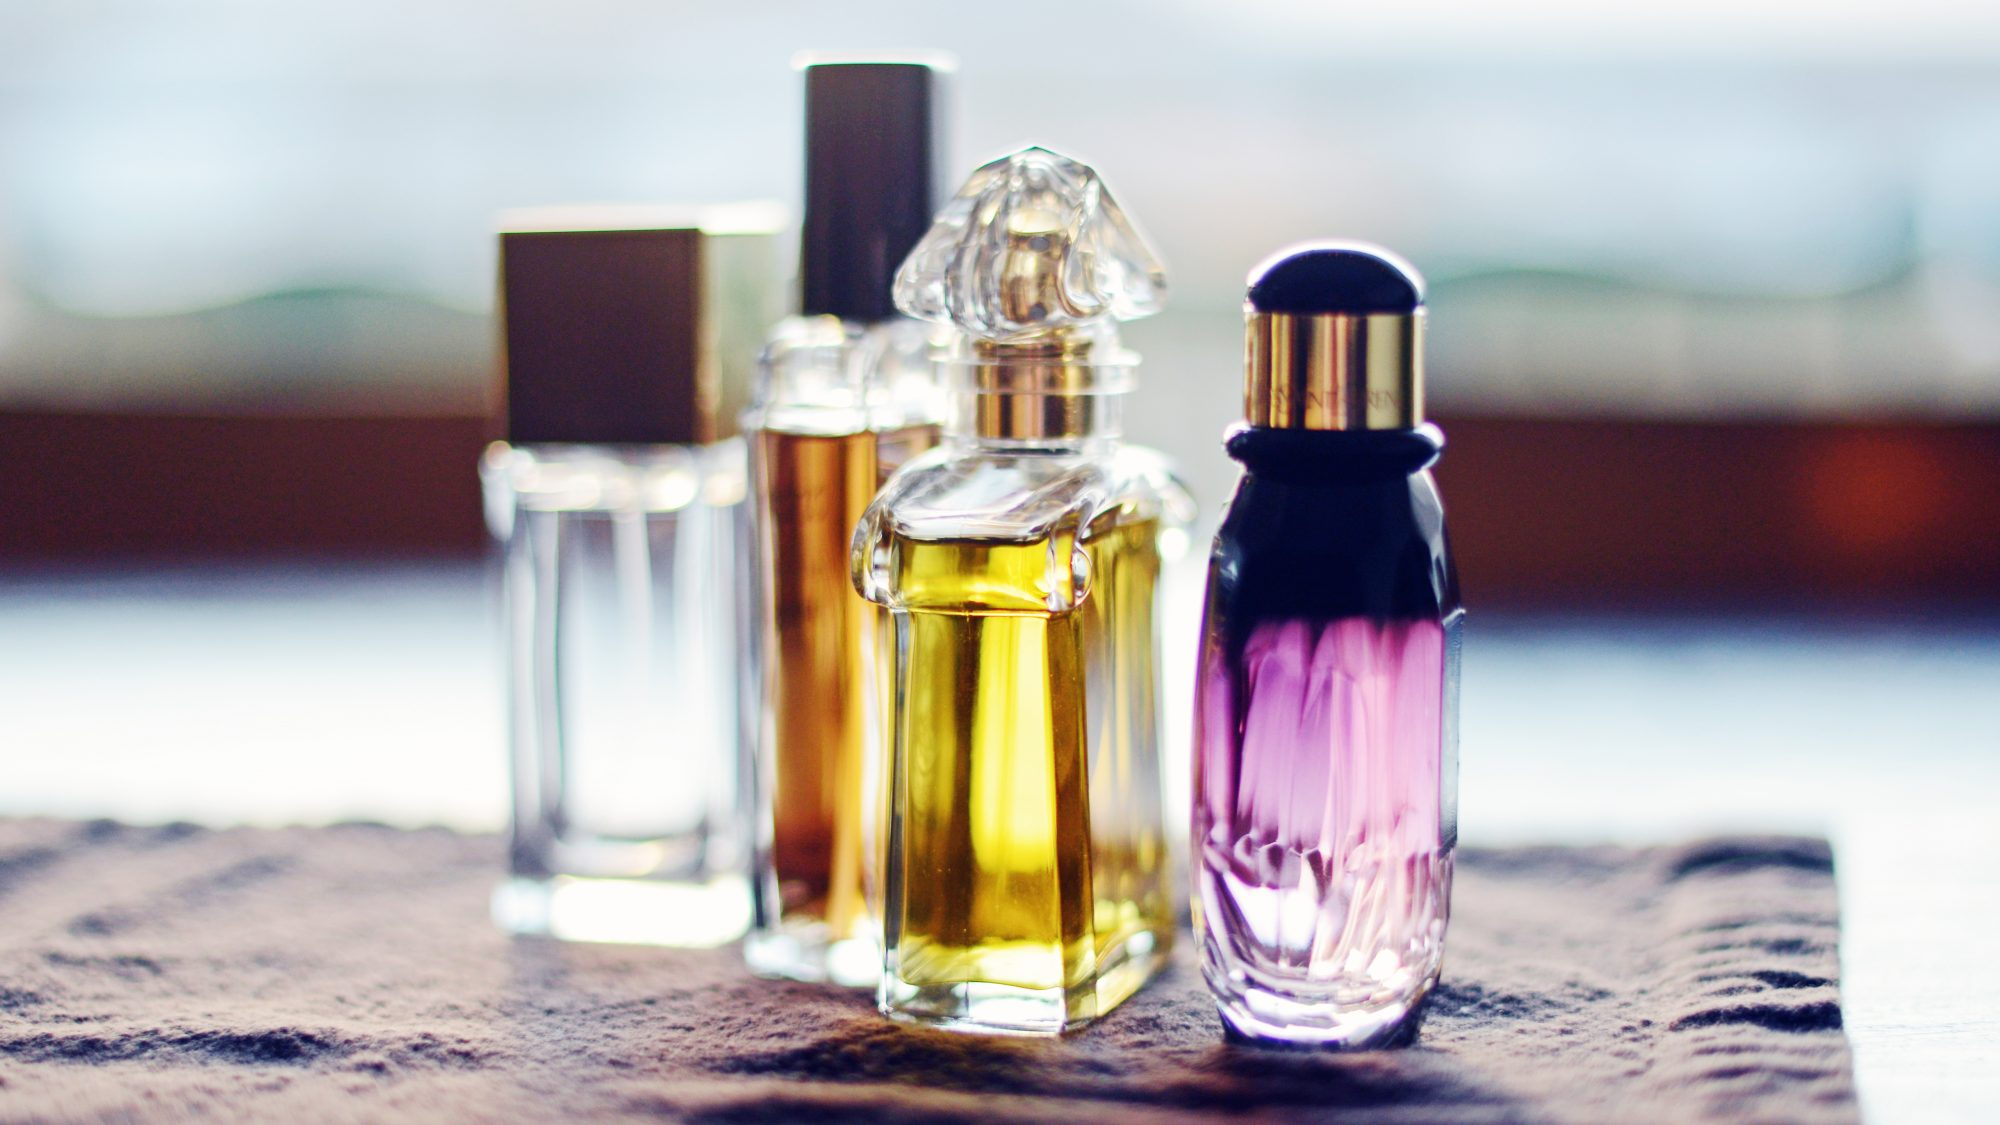 How to Store Perfume So It Lasts Longer | Real Simple